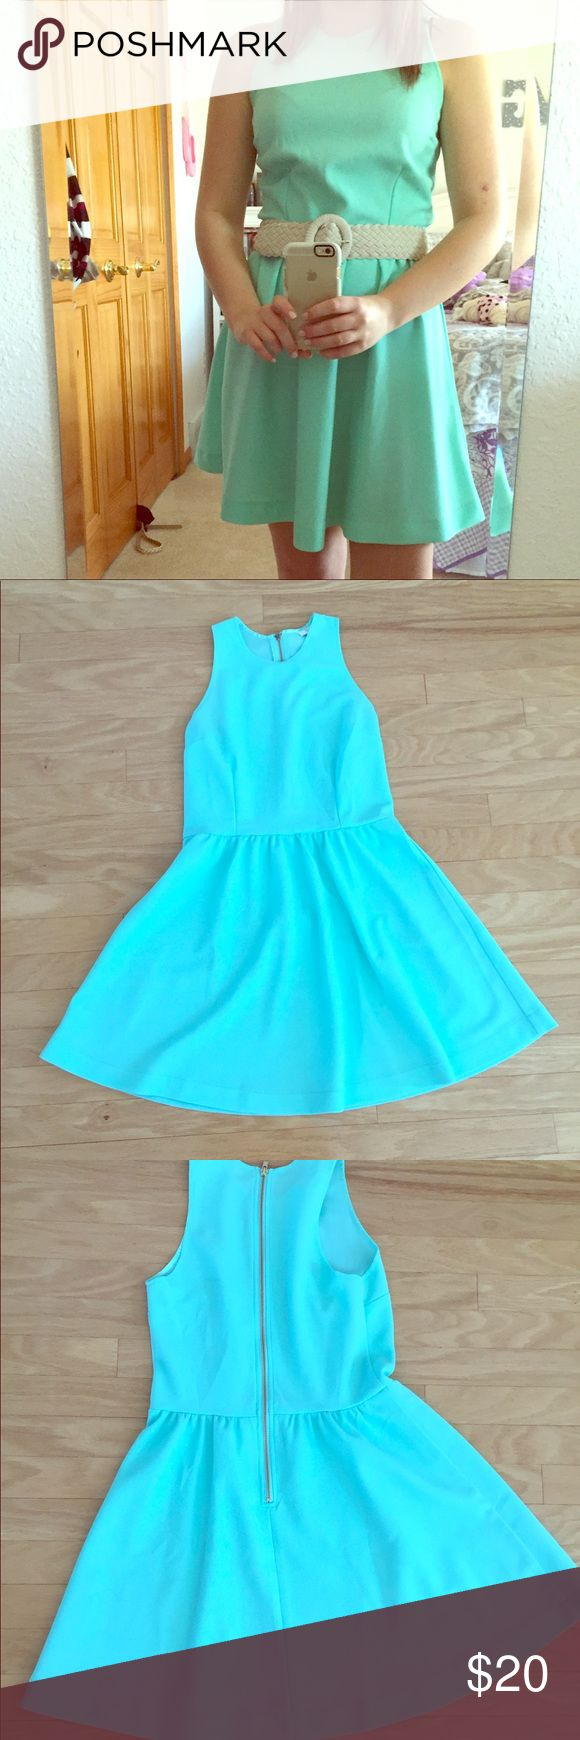 Mint dress! Beautiful mint colored dress (more mint green than mint blue). Can add a belt and prefect for many different occasions! Charming Charlie Dresses Midi